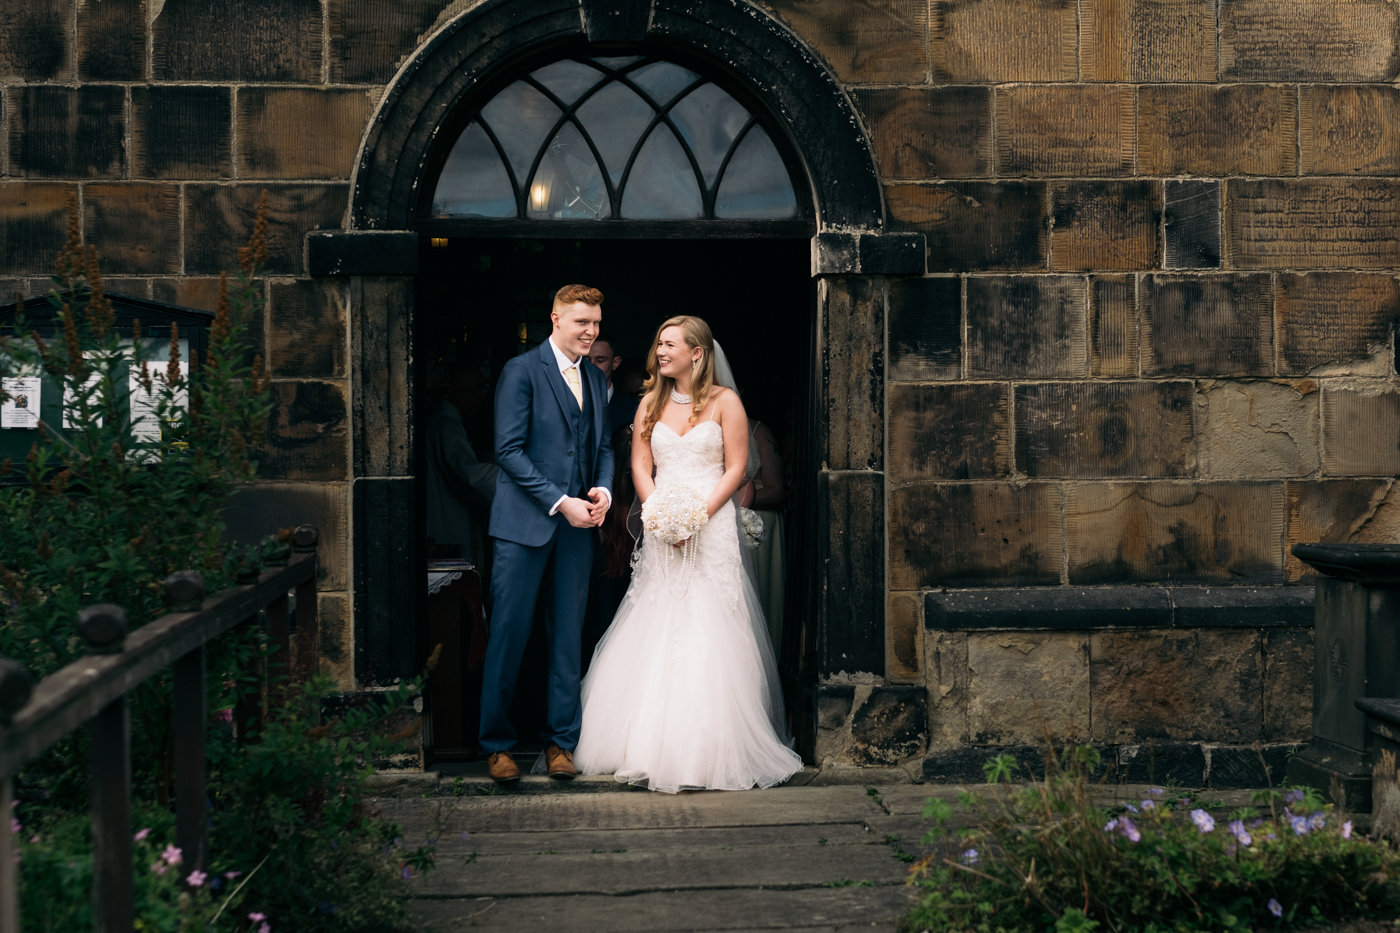 Image of bride and groom at wedding at St James Church in Leeds